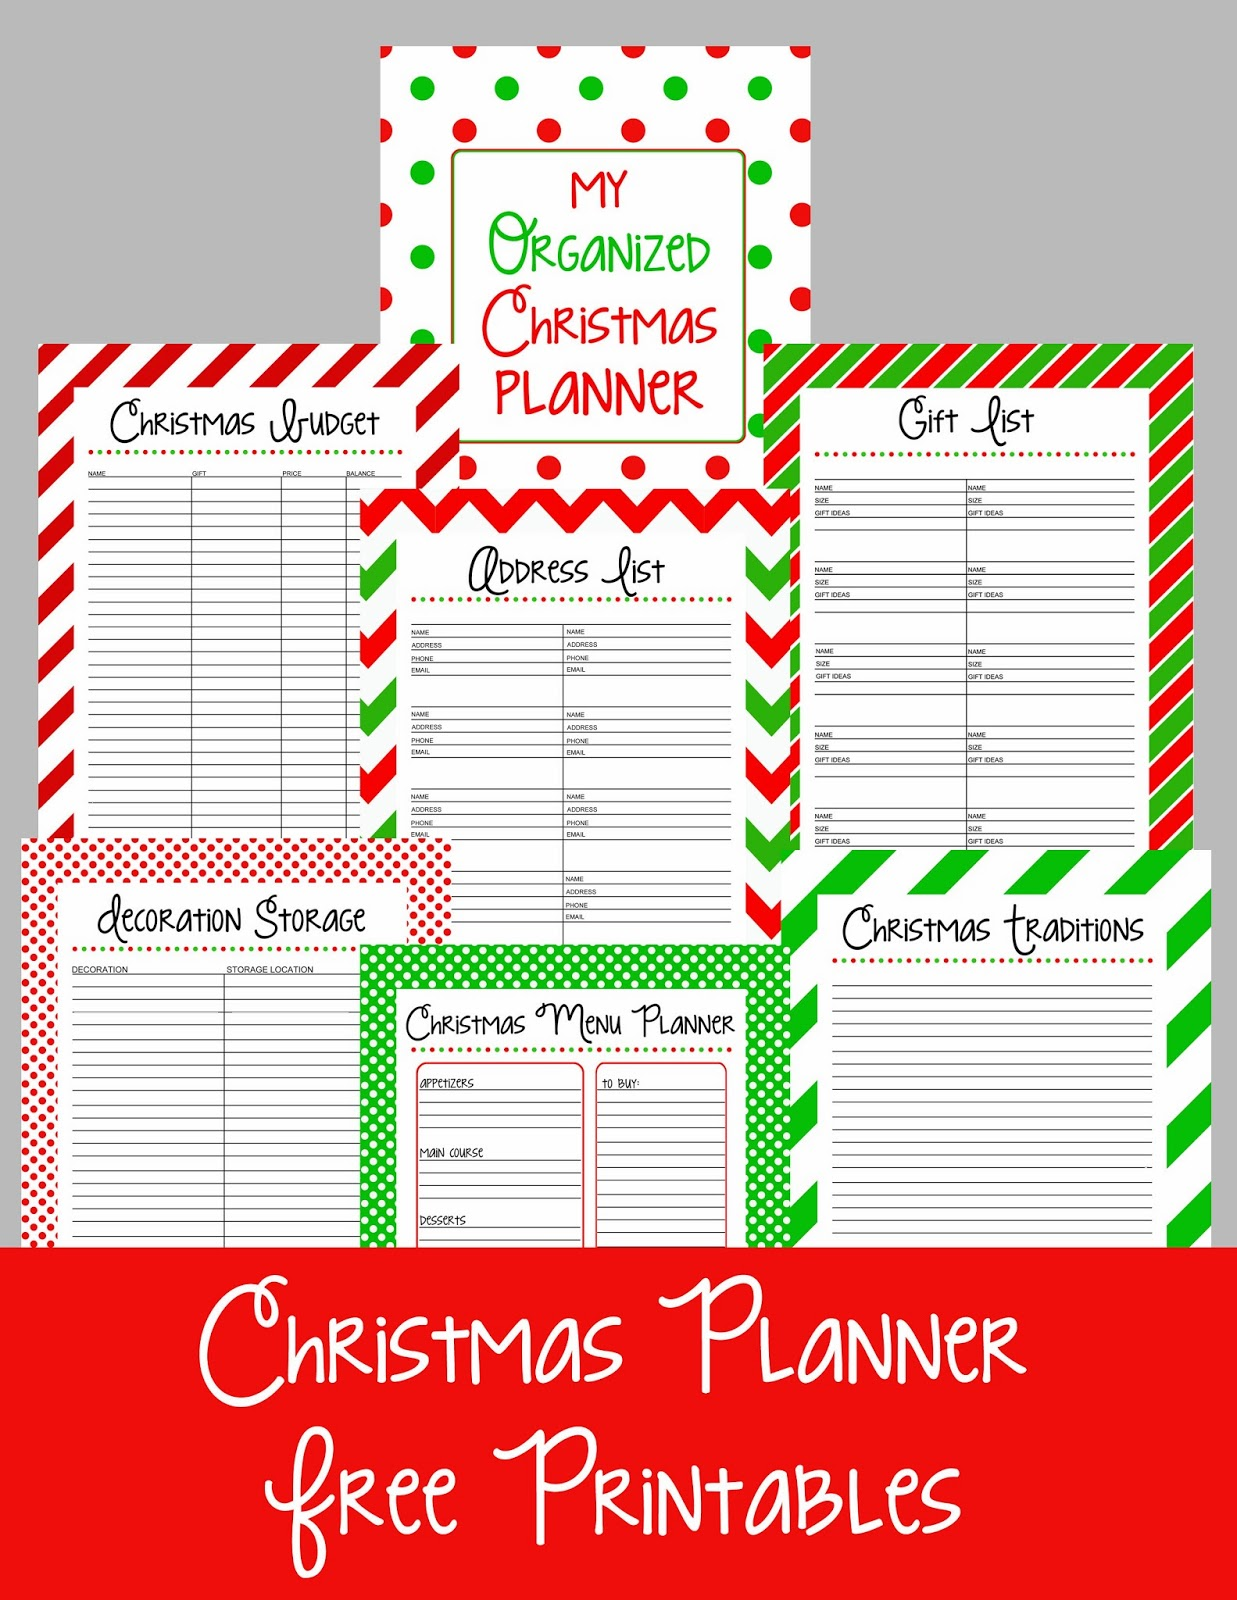 picture about Free Christmas Planner Printables identify Xmas Planner No cost Printables Kelly Leigh Produces